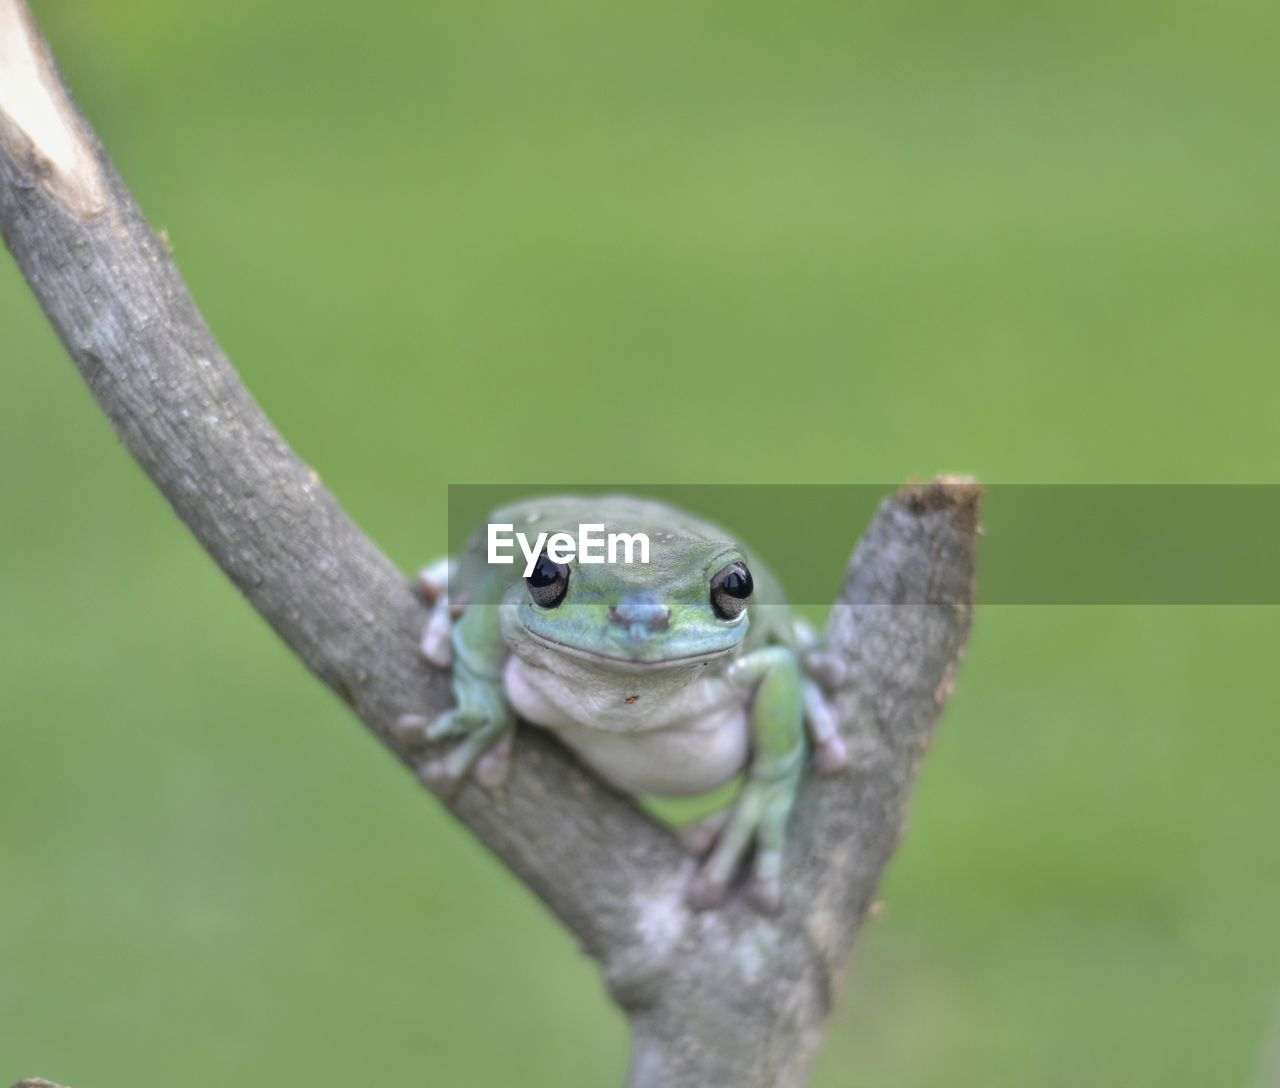 one animal, animal, animal wildlife, animal themes, animals in the wild, vertebrate, close-up, green color, focus on foreground, no people, nature, day, plant, animal body part, reptile, amphibian, outdoors, animal head, selective focus, frog, animal eye